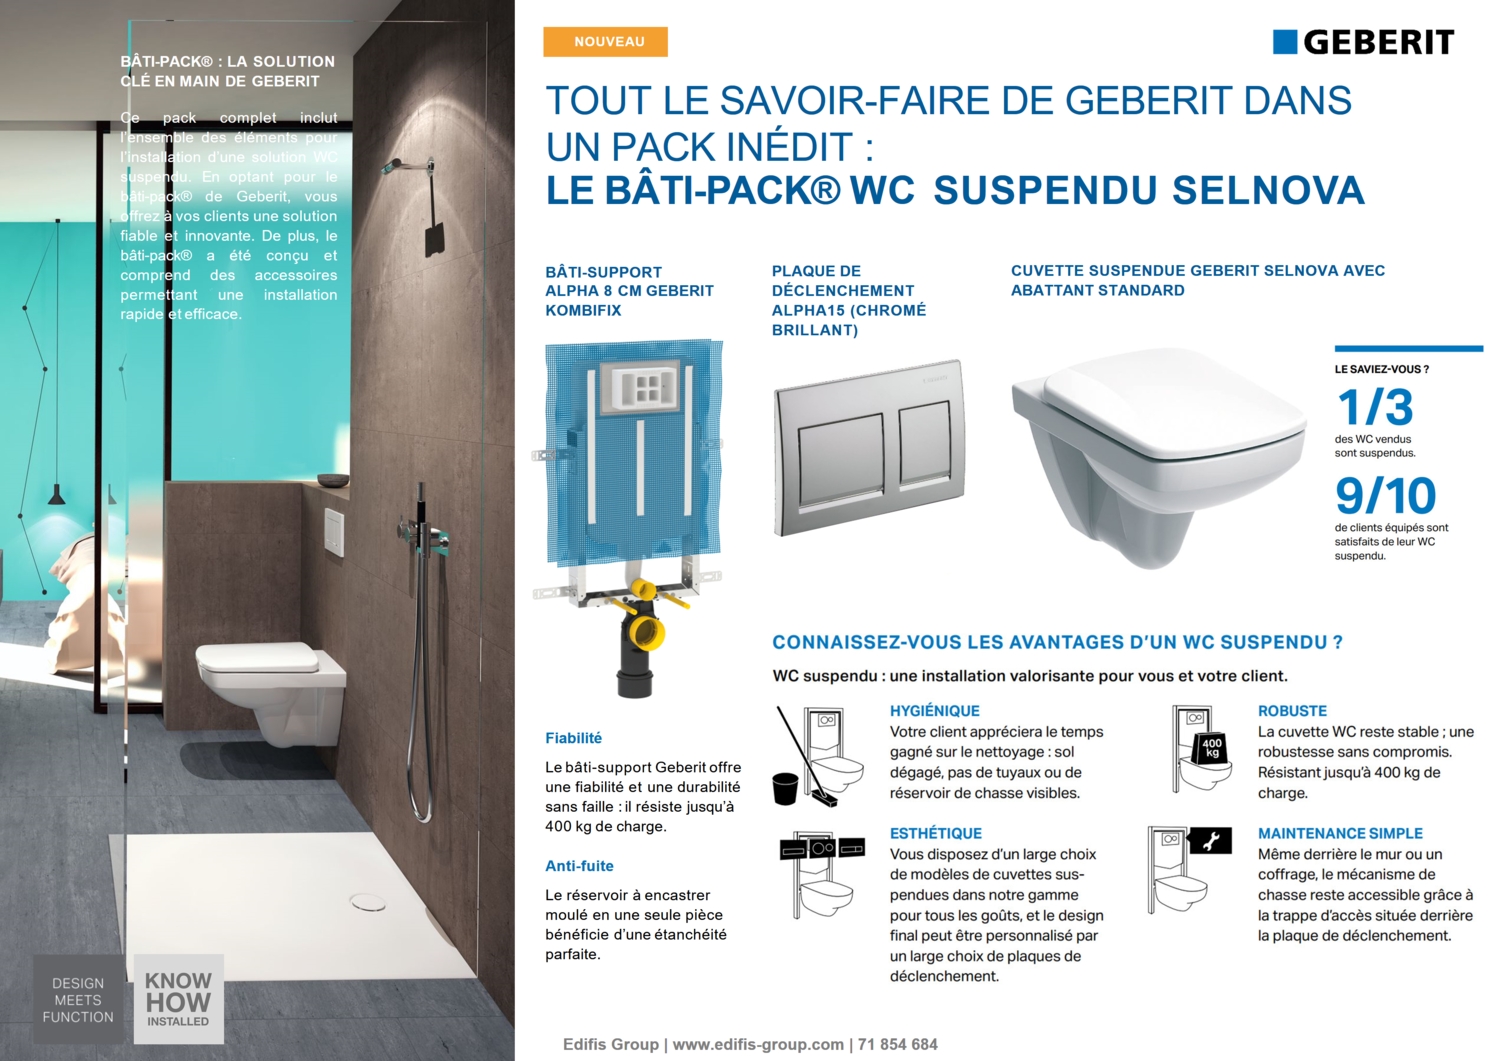 Bâti-pack® WC suspendu Geberit Selnova